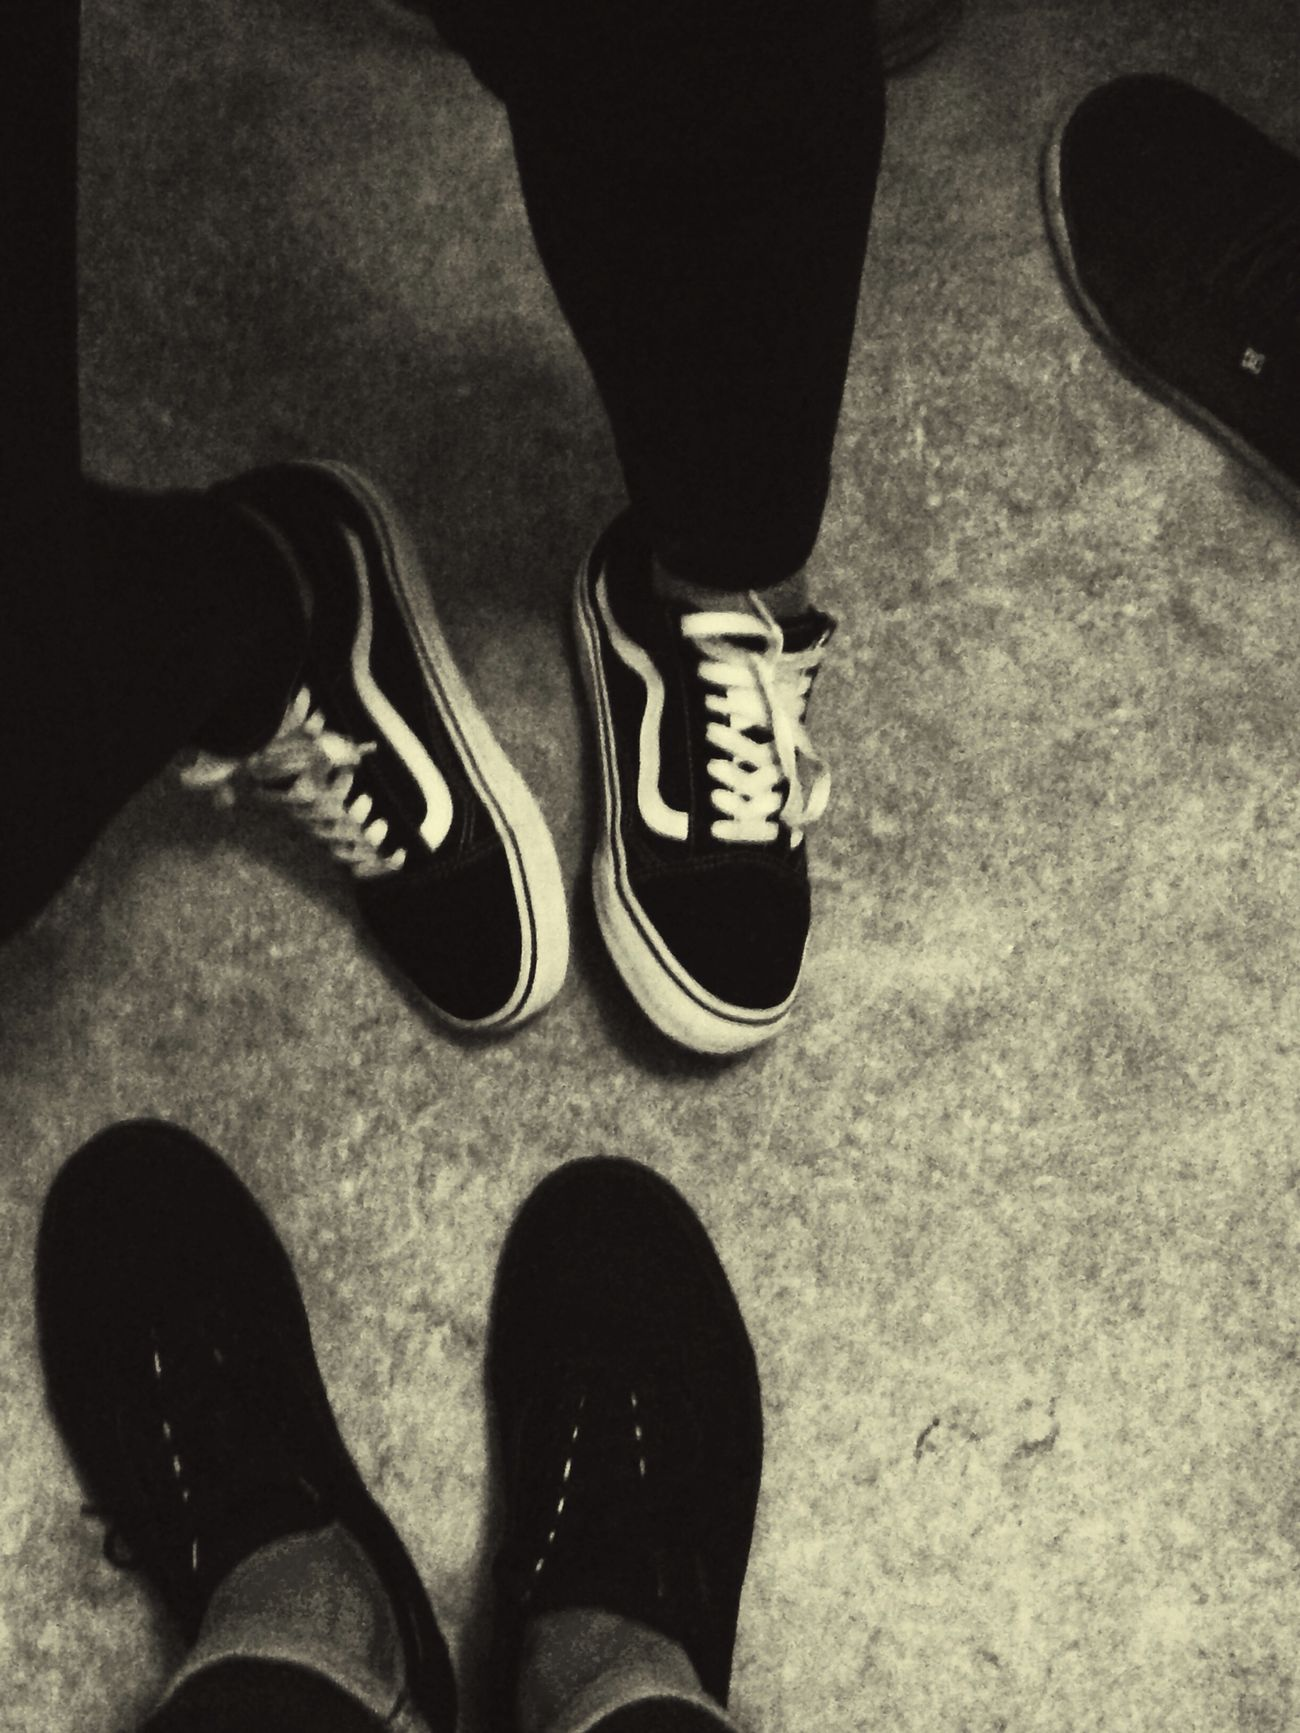 Shoe Vans Off The Wall Lifestyles Friends Alcool  Drunk